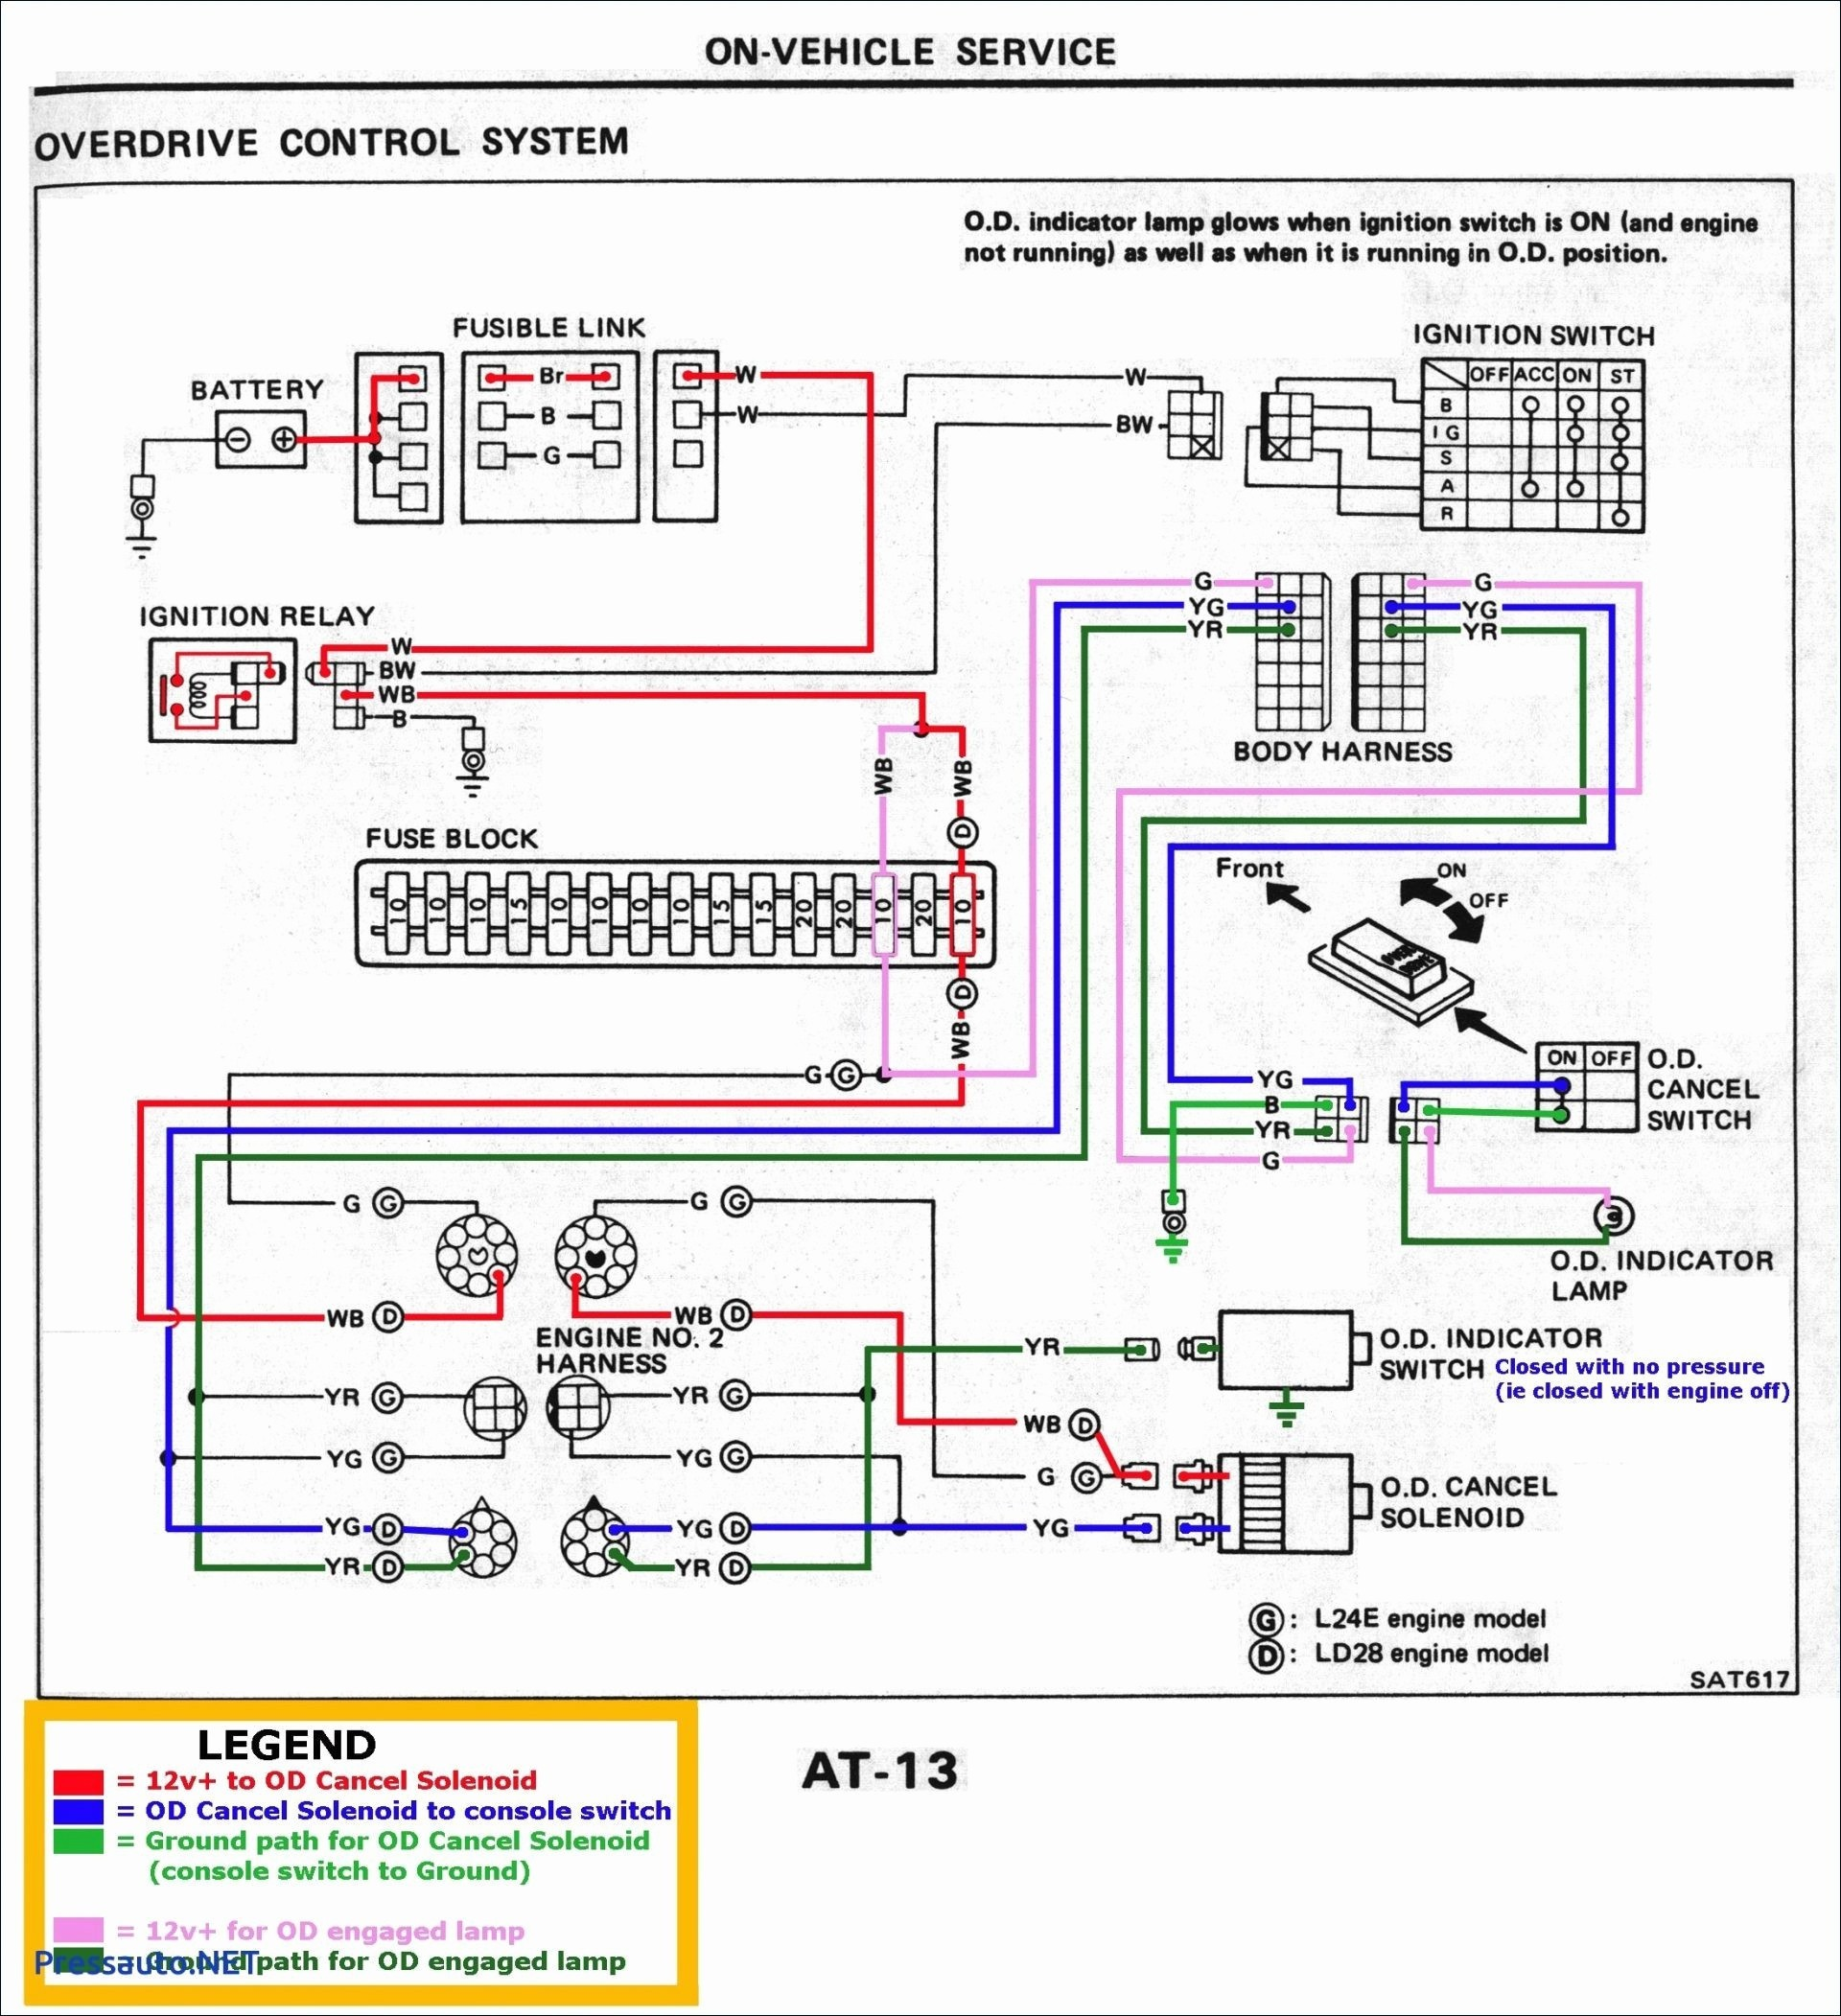 Pv Diagram for Petrol Engine 1979 Camaro Wiring Schematic Another Blog About Wiring Diagram • Of Pv Diagram for Petrol Engine Gator Wiring Diagram Gator Tx Wiring Gator tools Gator Heater